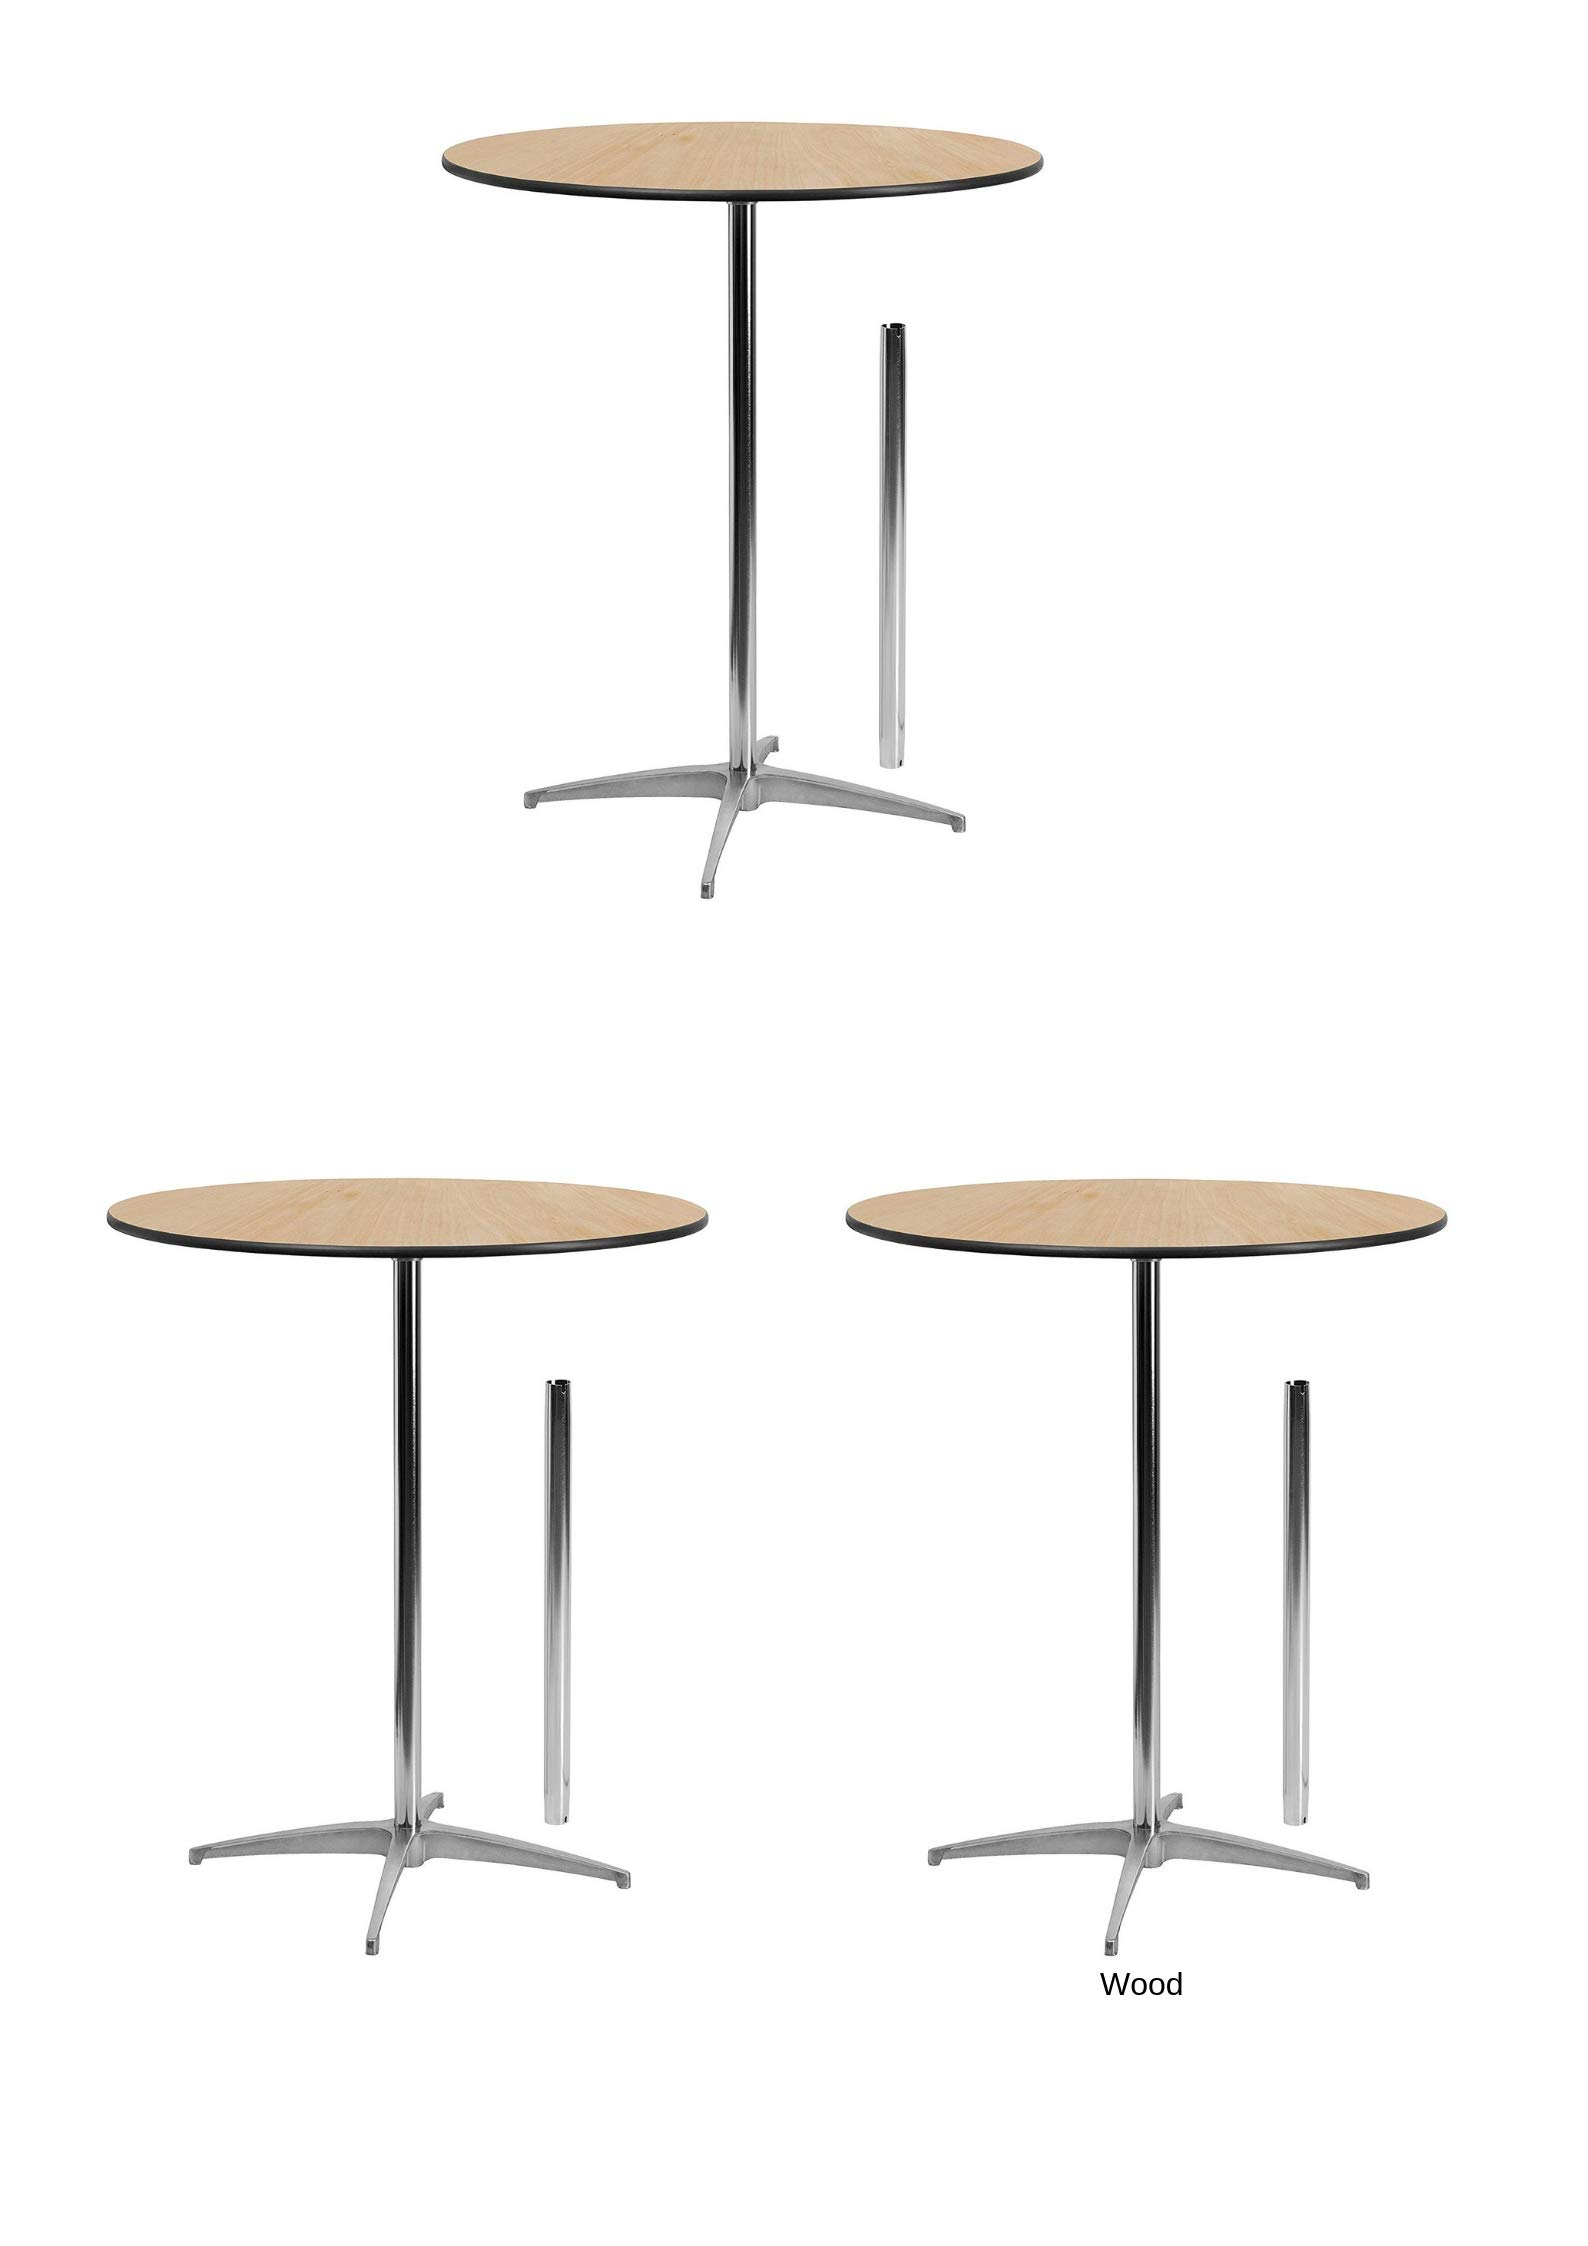 Flash Furniture 36'' Round Wood Cocktail Table with 30'' and 42'' Columns (3 Pack,36-Inch) by Flash Furniture (Image #1)